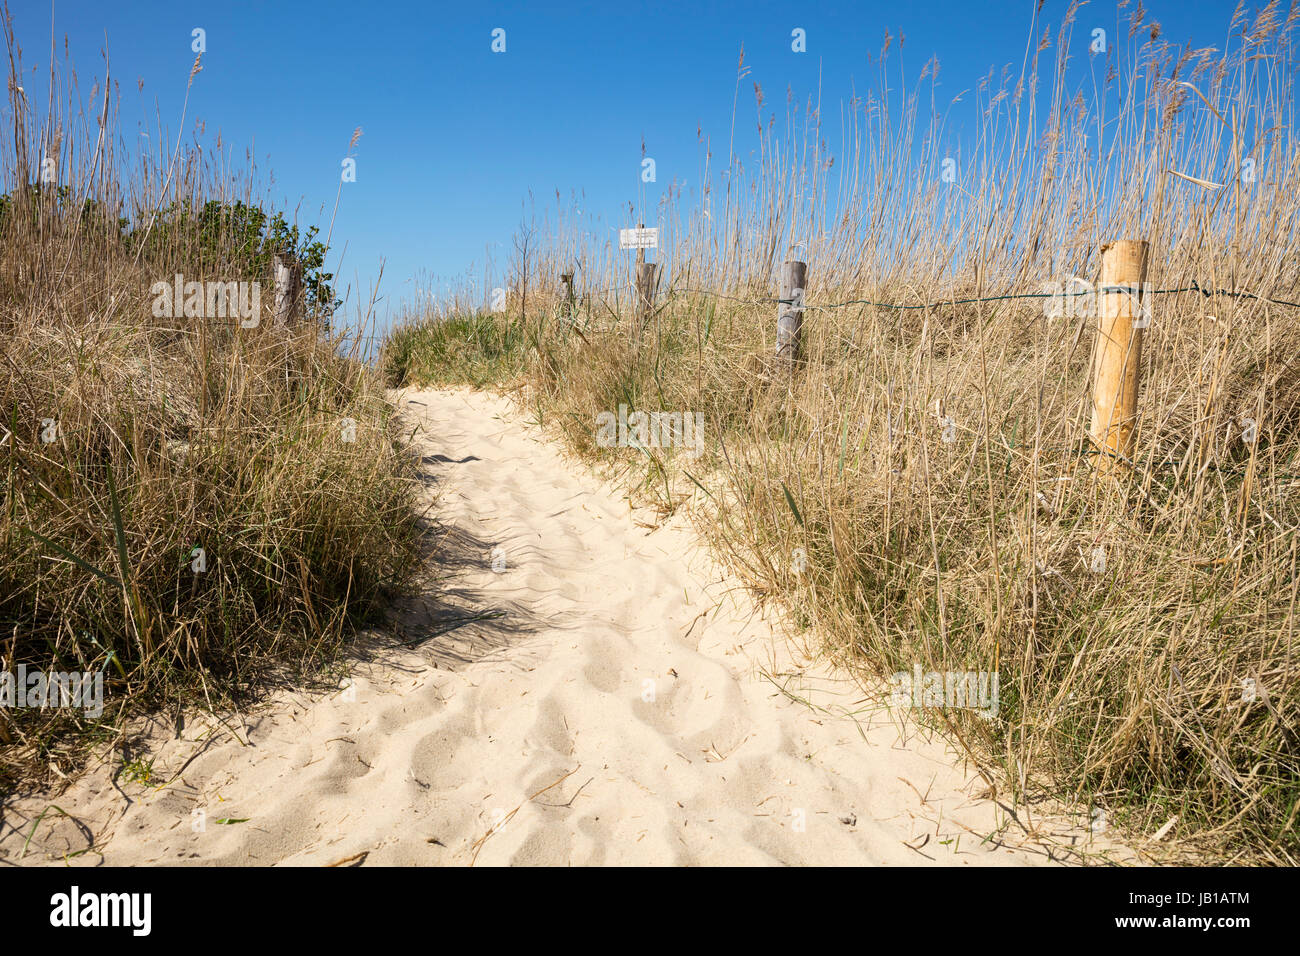 Path through the dunes, Cuxhaven, North Sea, Lower Saxony, Germany - Stock Image